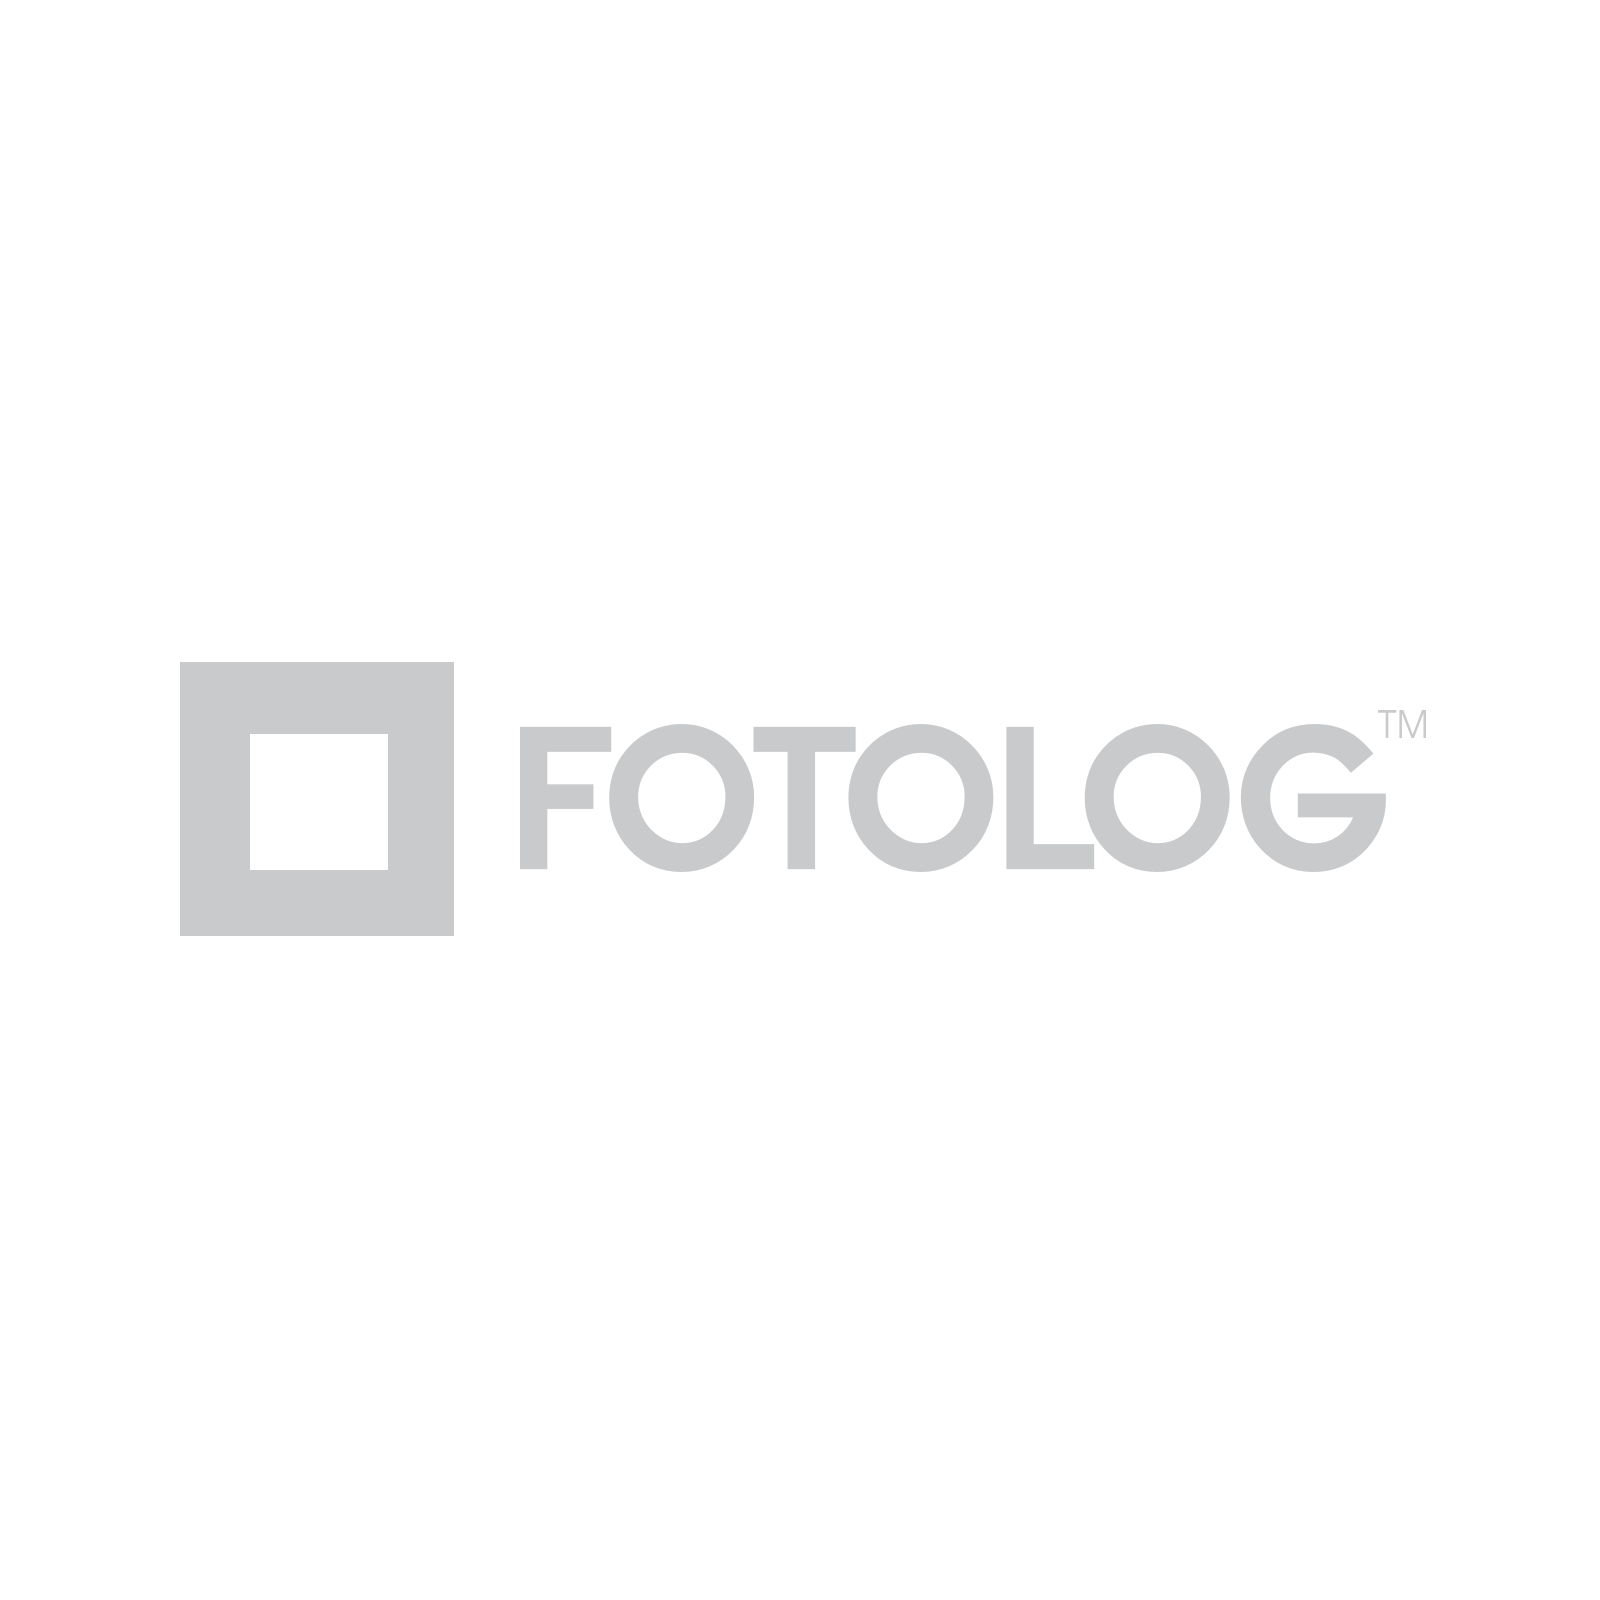 Copy of Fotolog Logo